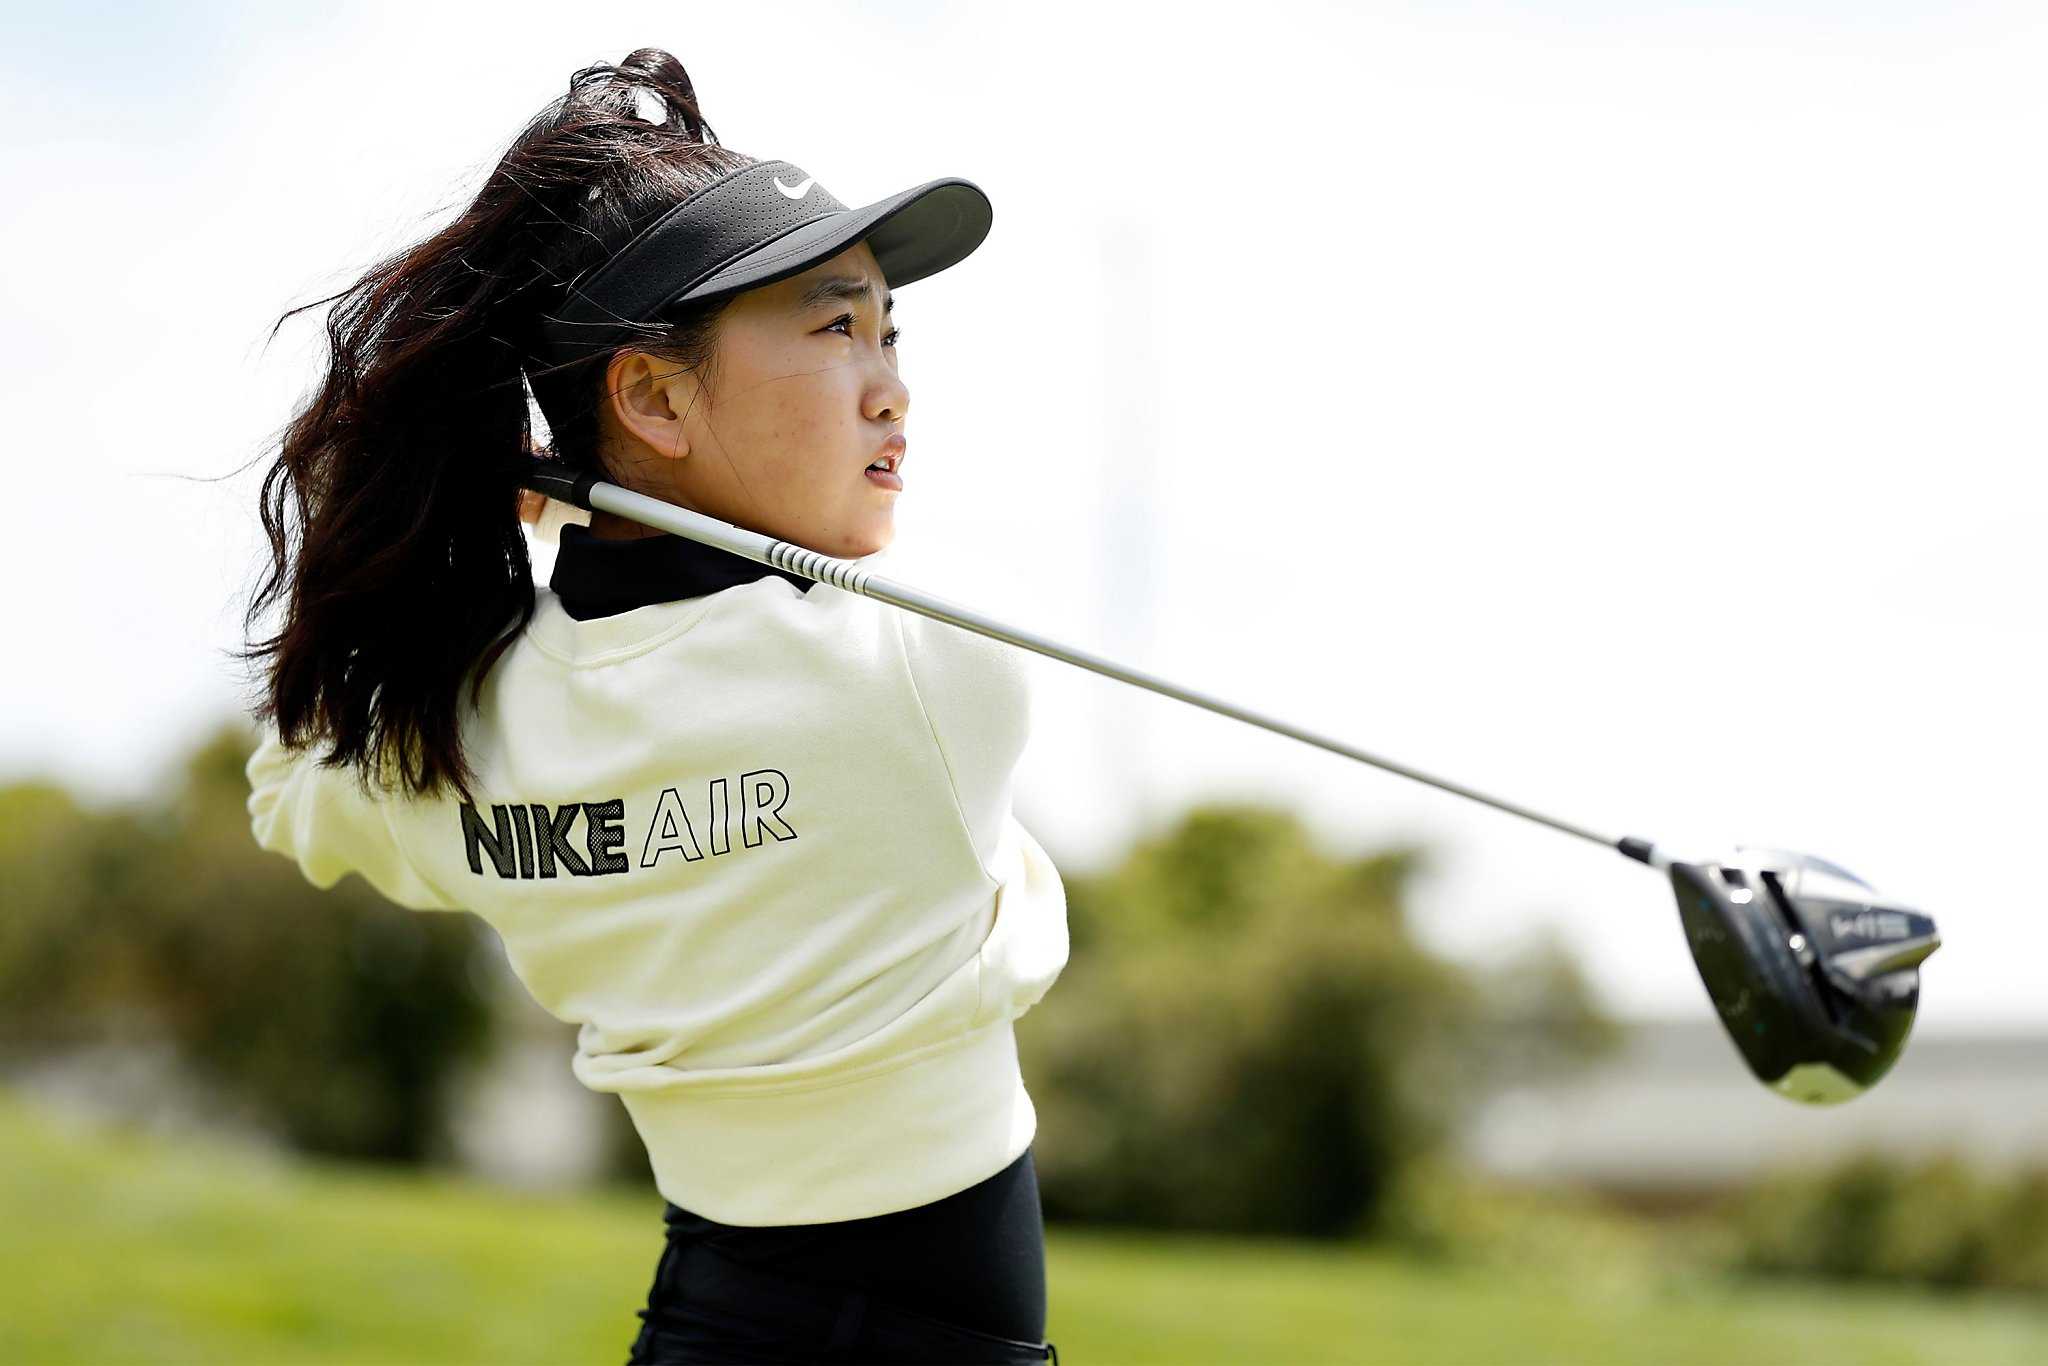 Lucy Li Burst Onto U S Women S Open Stage At 11 This Time She S A Pro With Big Goals